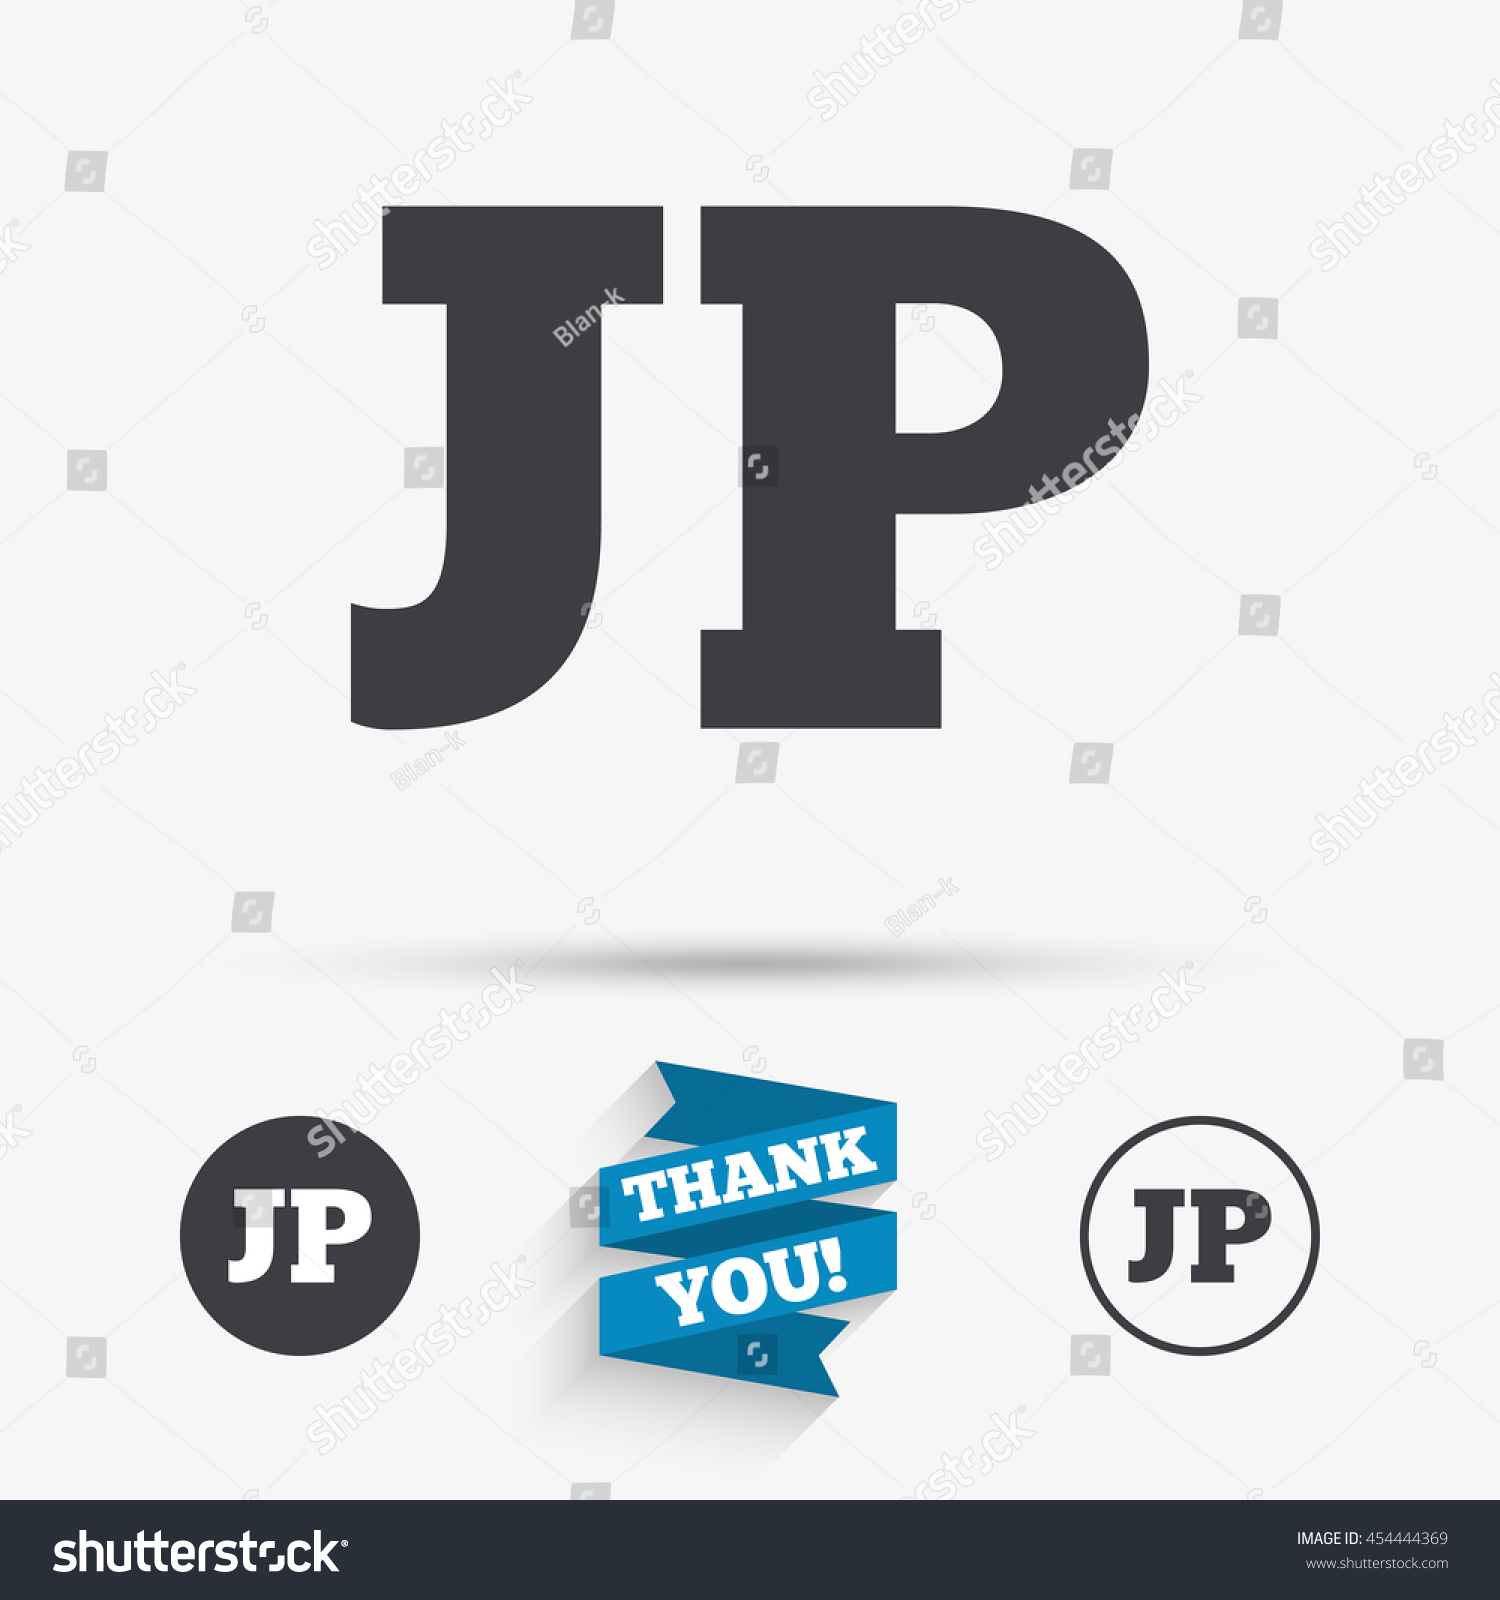 Japanese language sign icon jp japan stock vector 454444369 japanese language sign icon jp japan translation symbol flat icons buttons with icons biocorpaavc Gallery